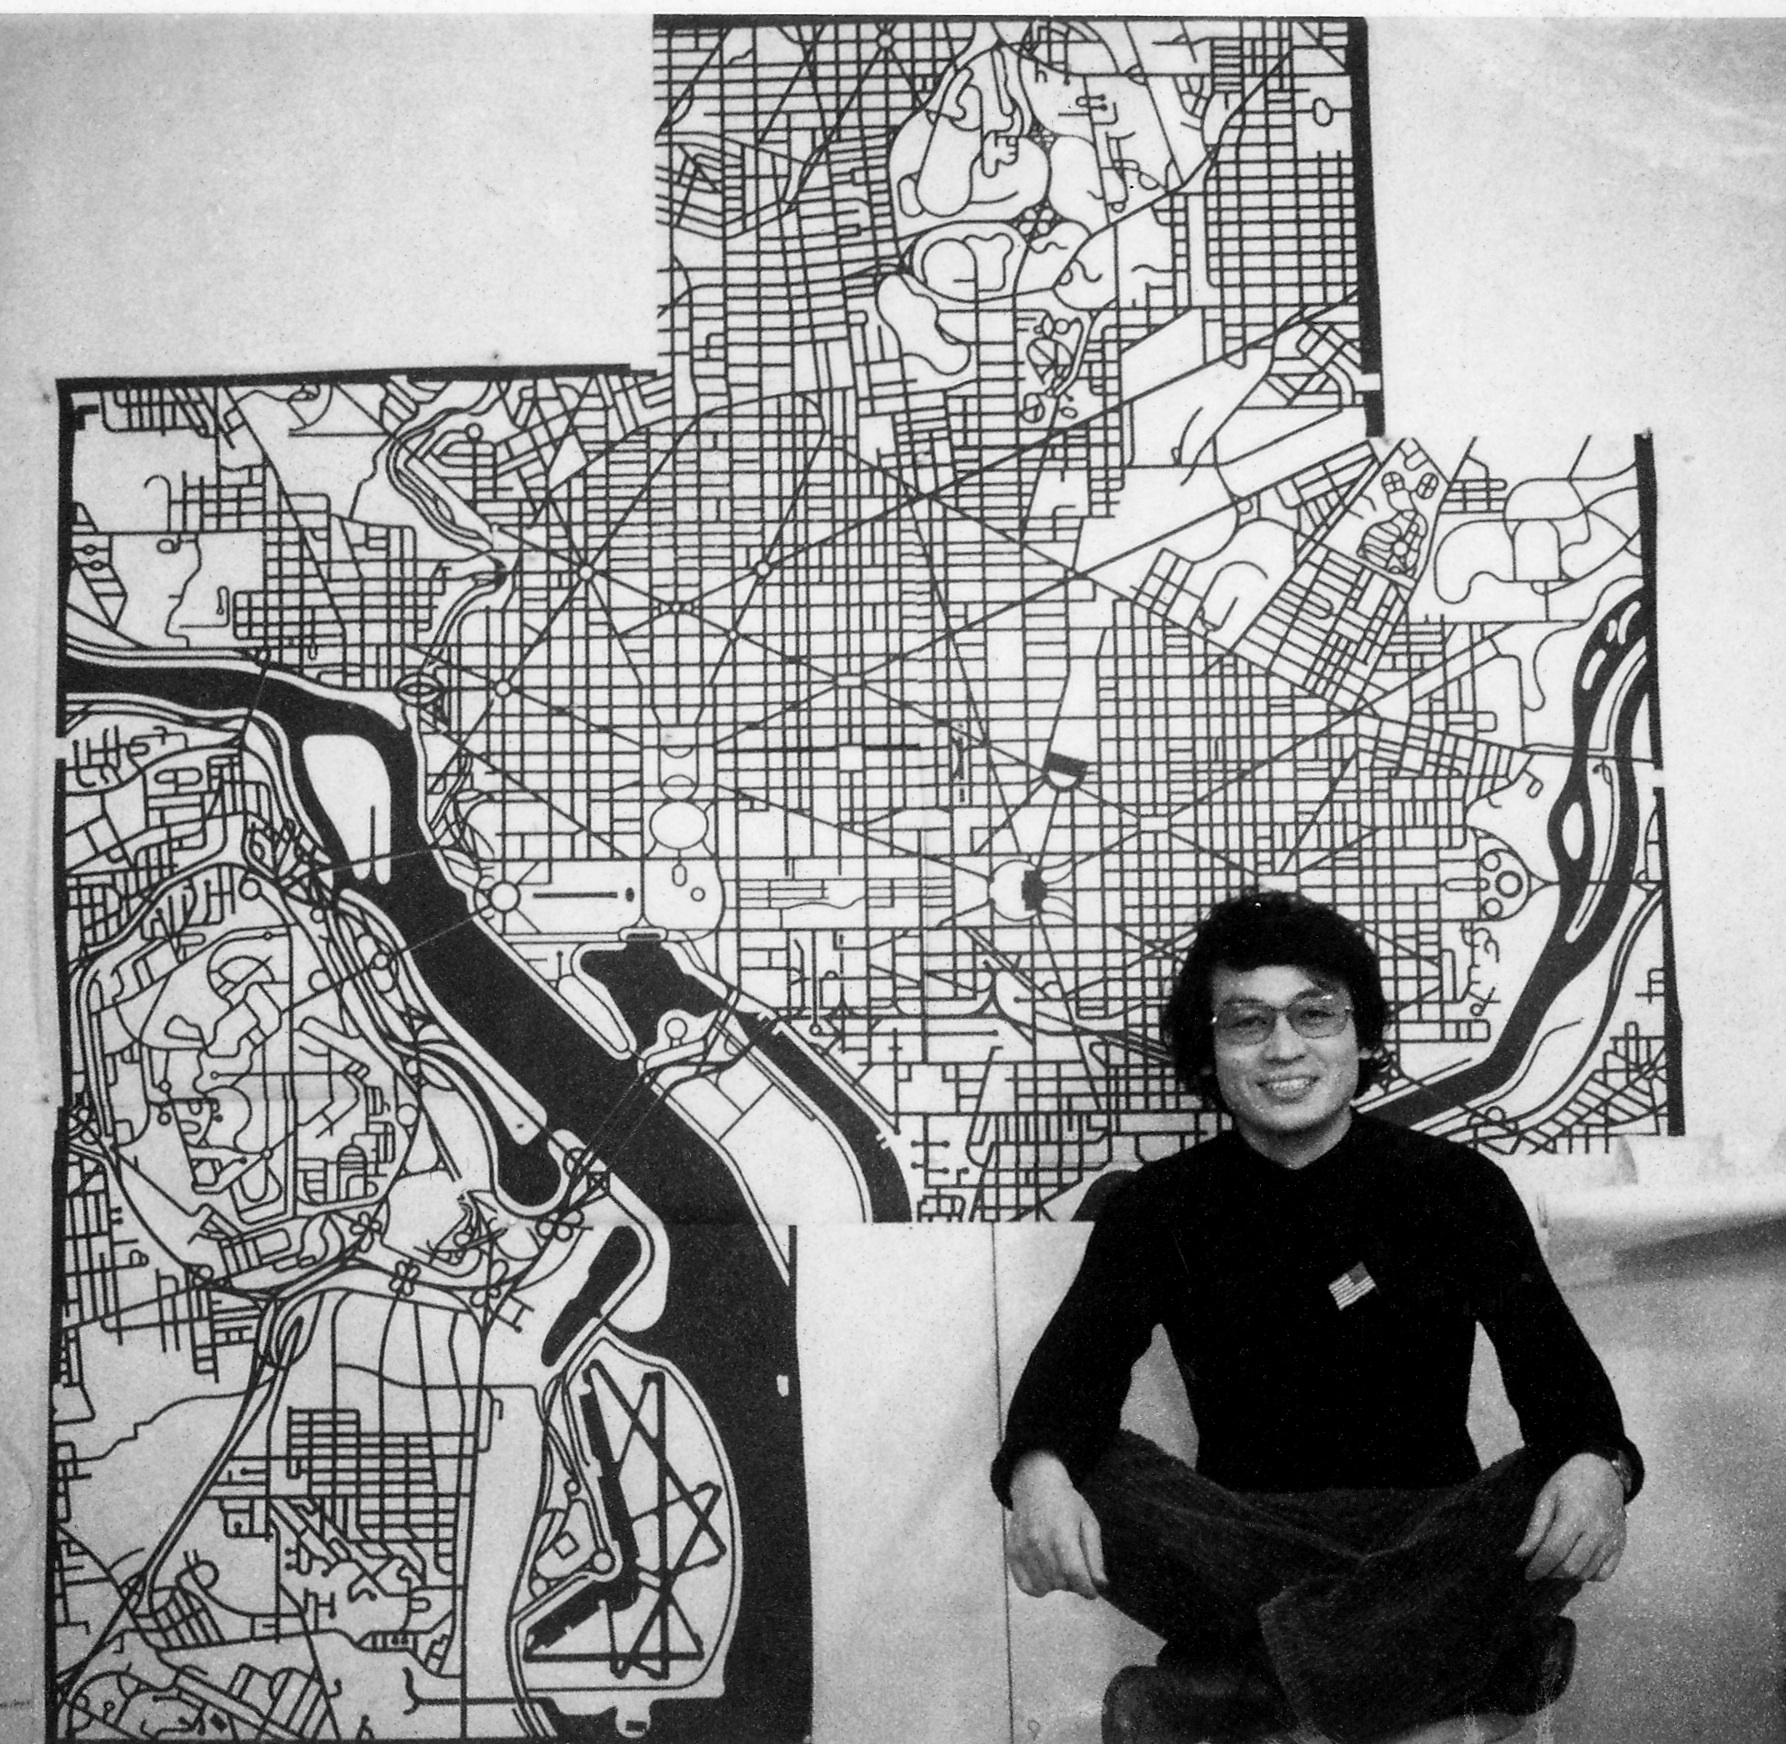 Aki sitting in front of map cutouts